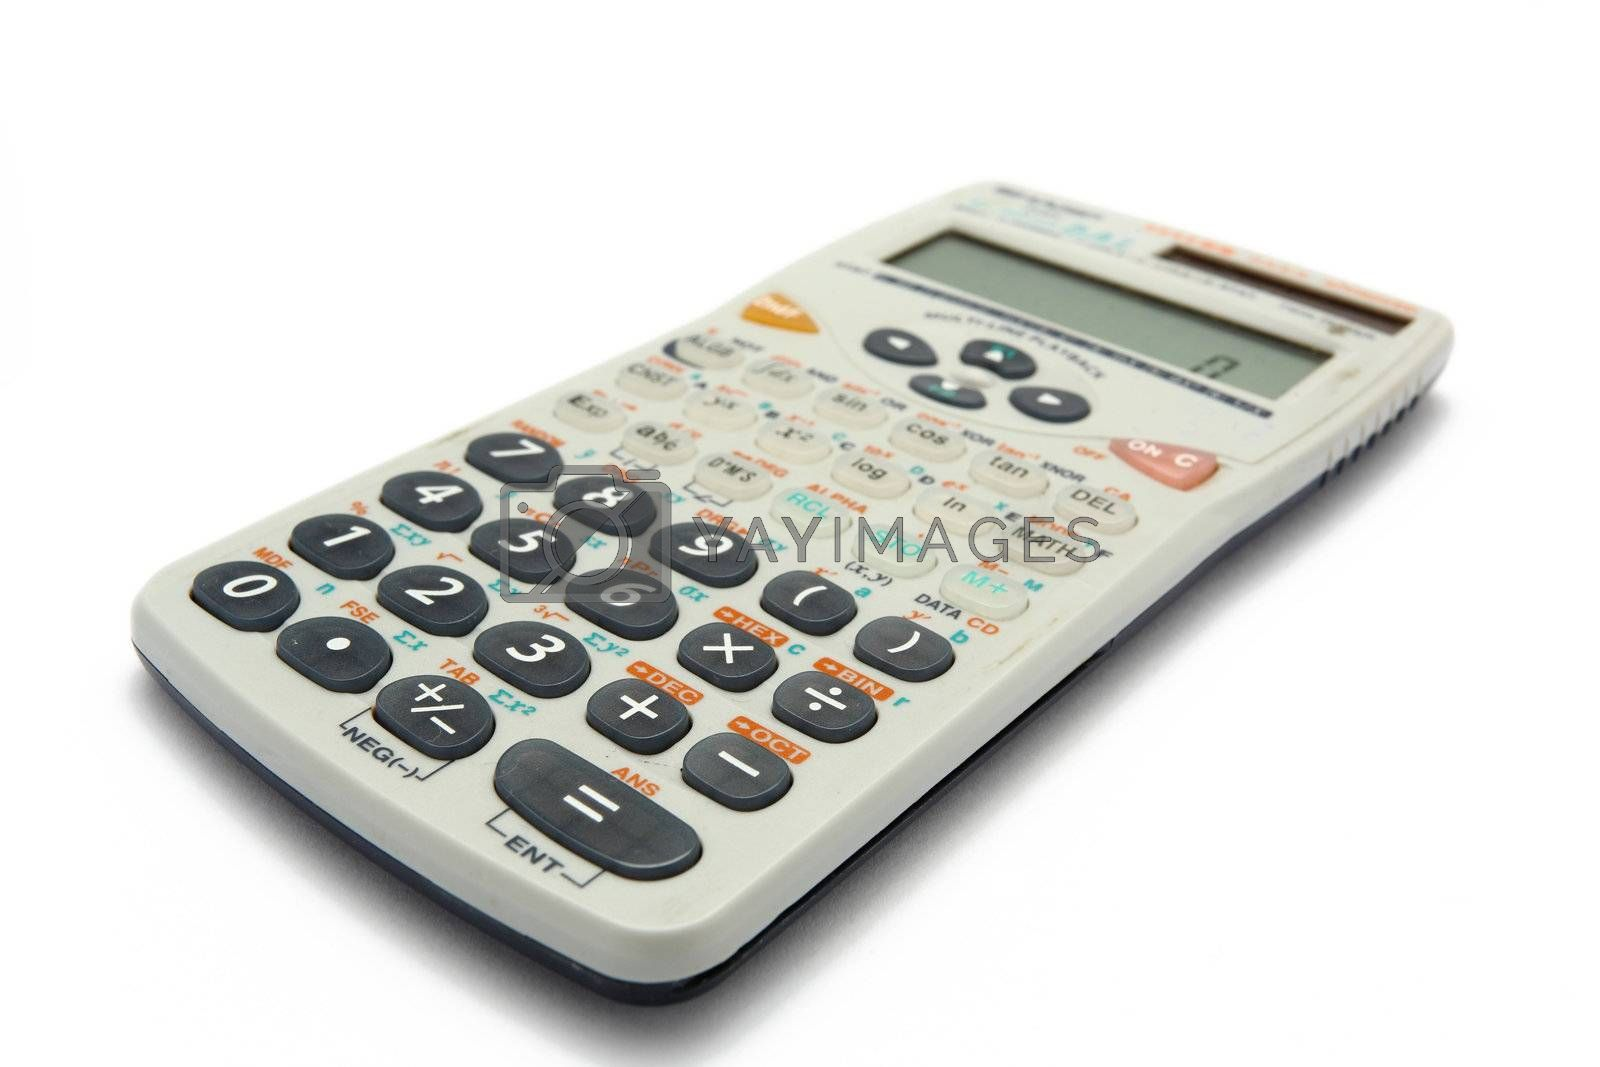 scientific calculator by leungchopan